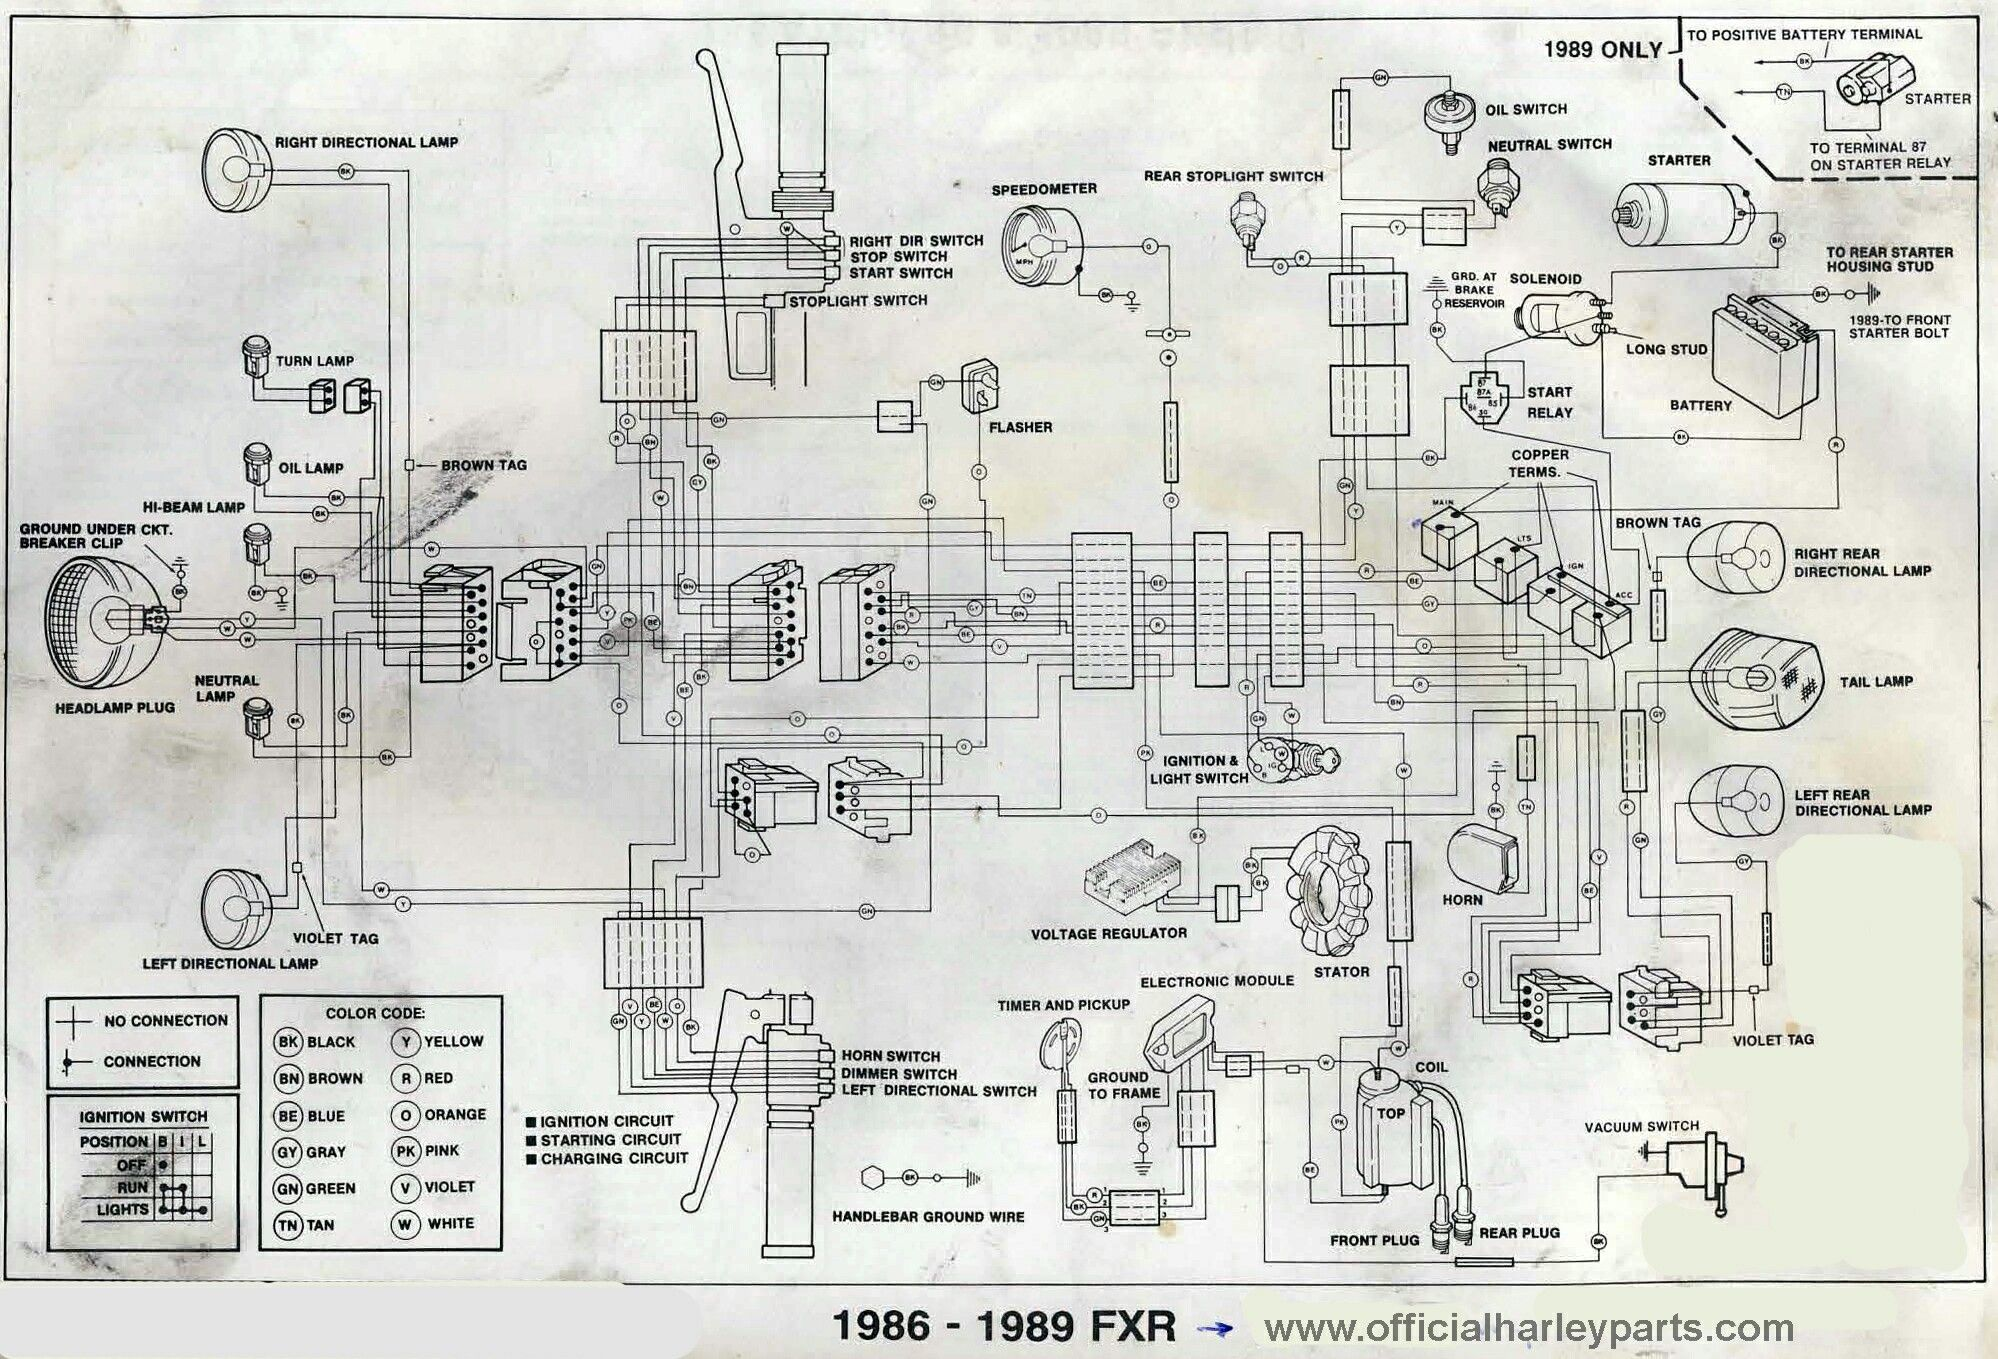 87 Fxr Wiring Diagram Everything About Sportster Pin By Rene Bruno On Pinterest Rh In Com 1988 Softail